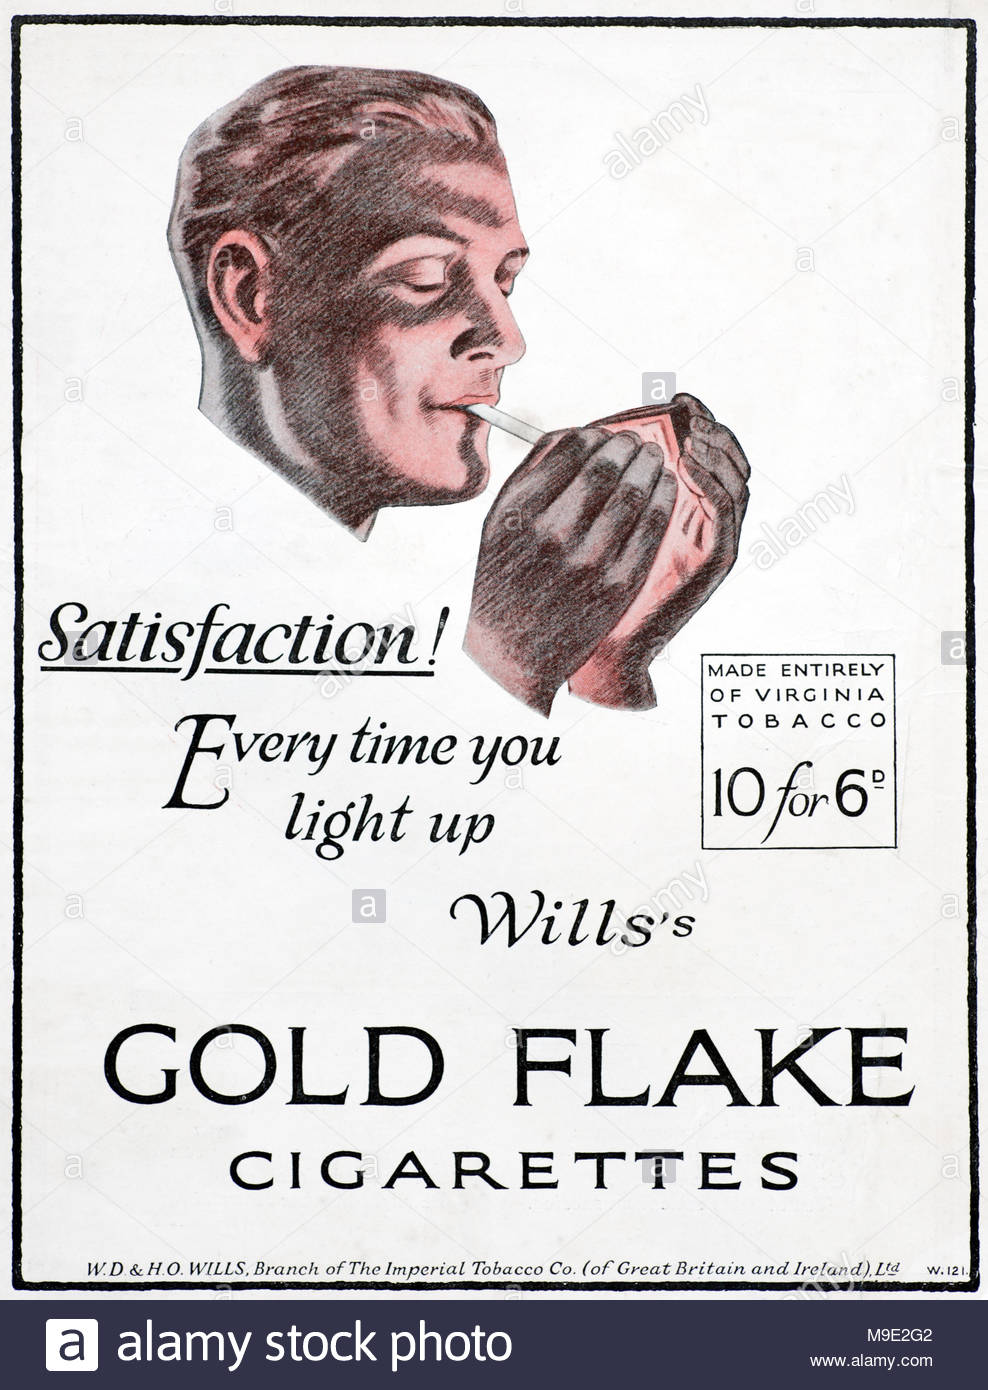 Vintage advertising for Will's Gold Flake Cigarettes 1925 - Stock Image